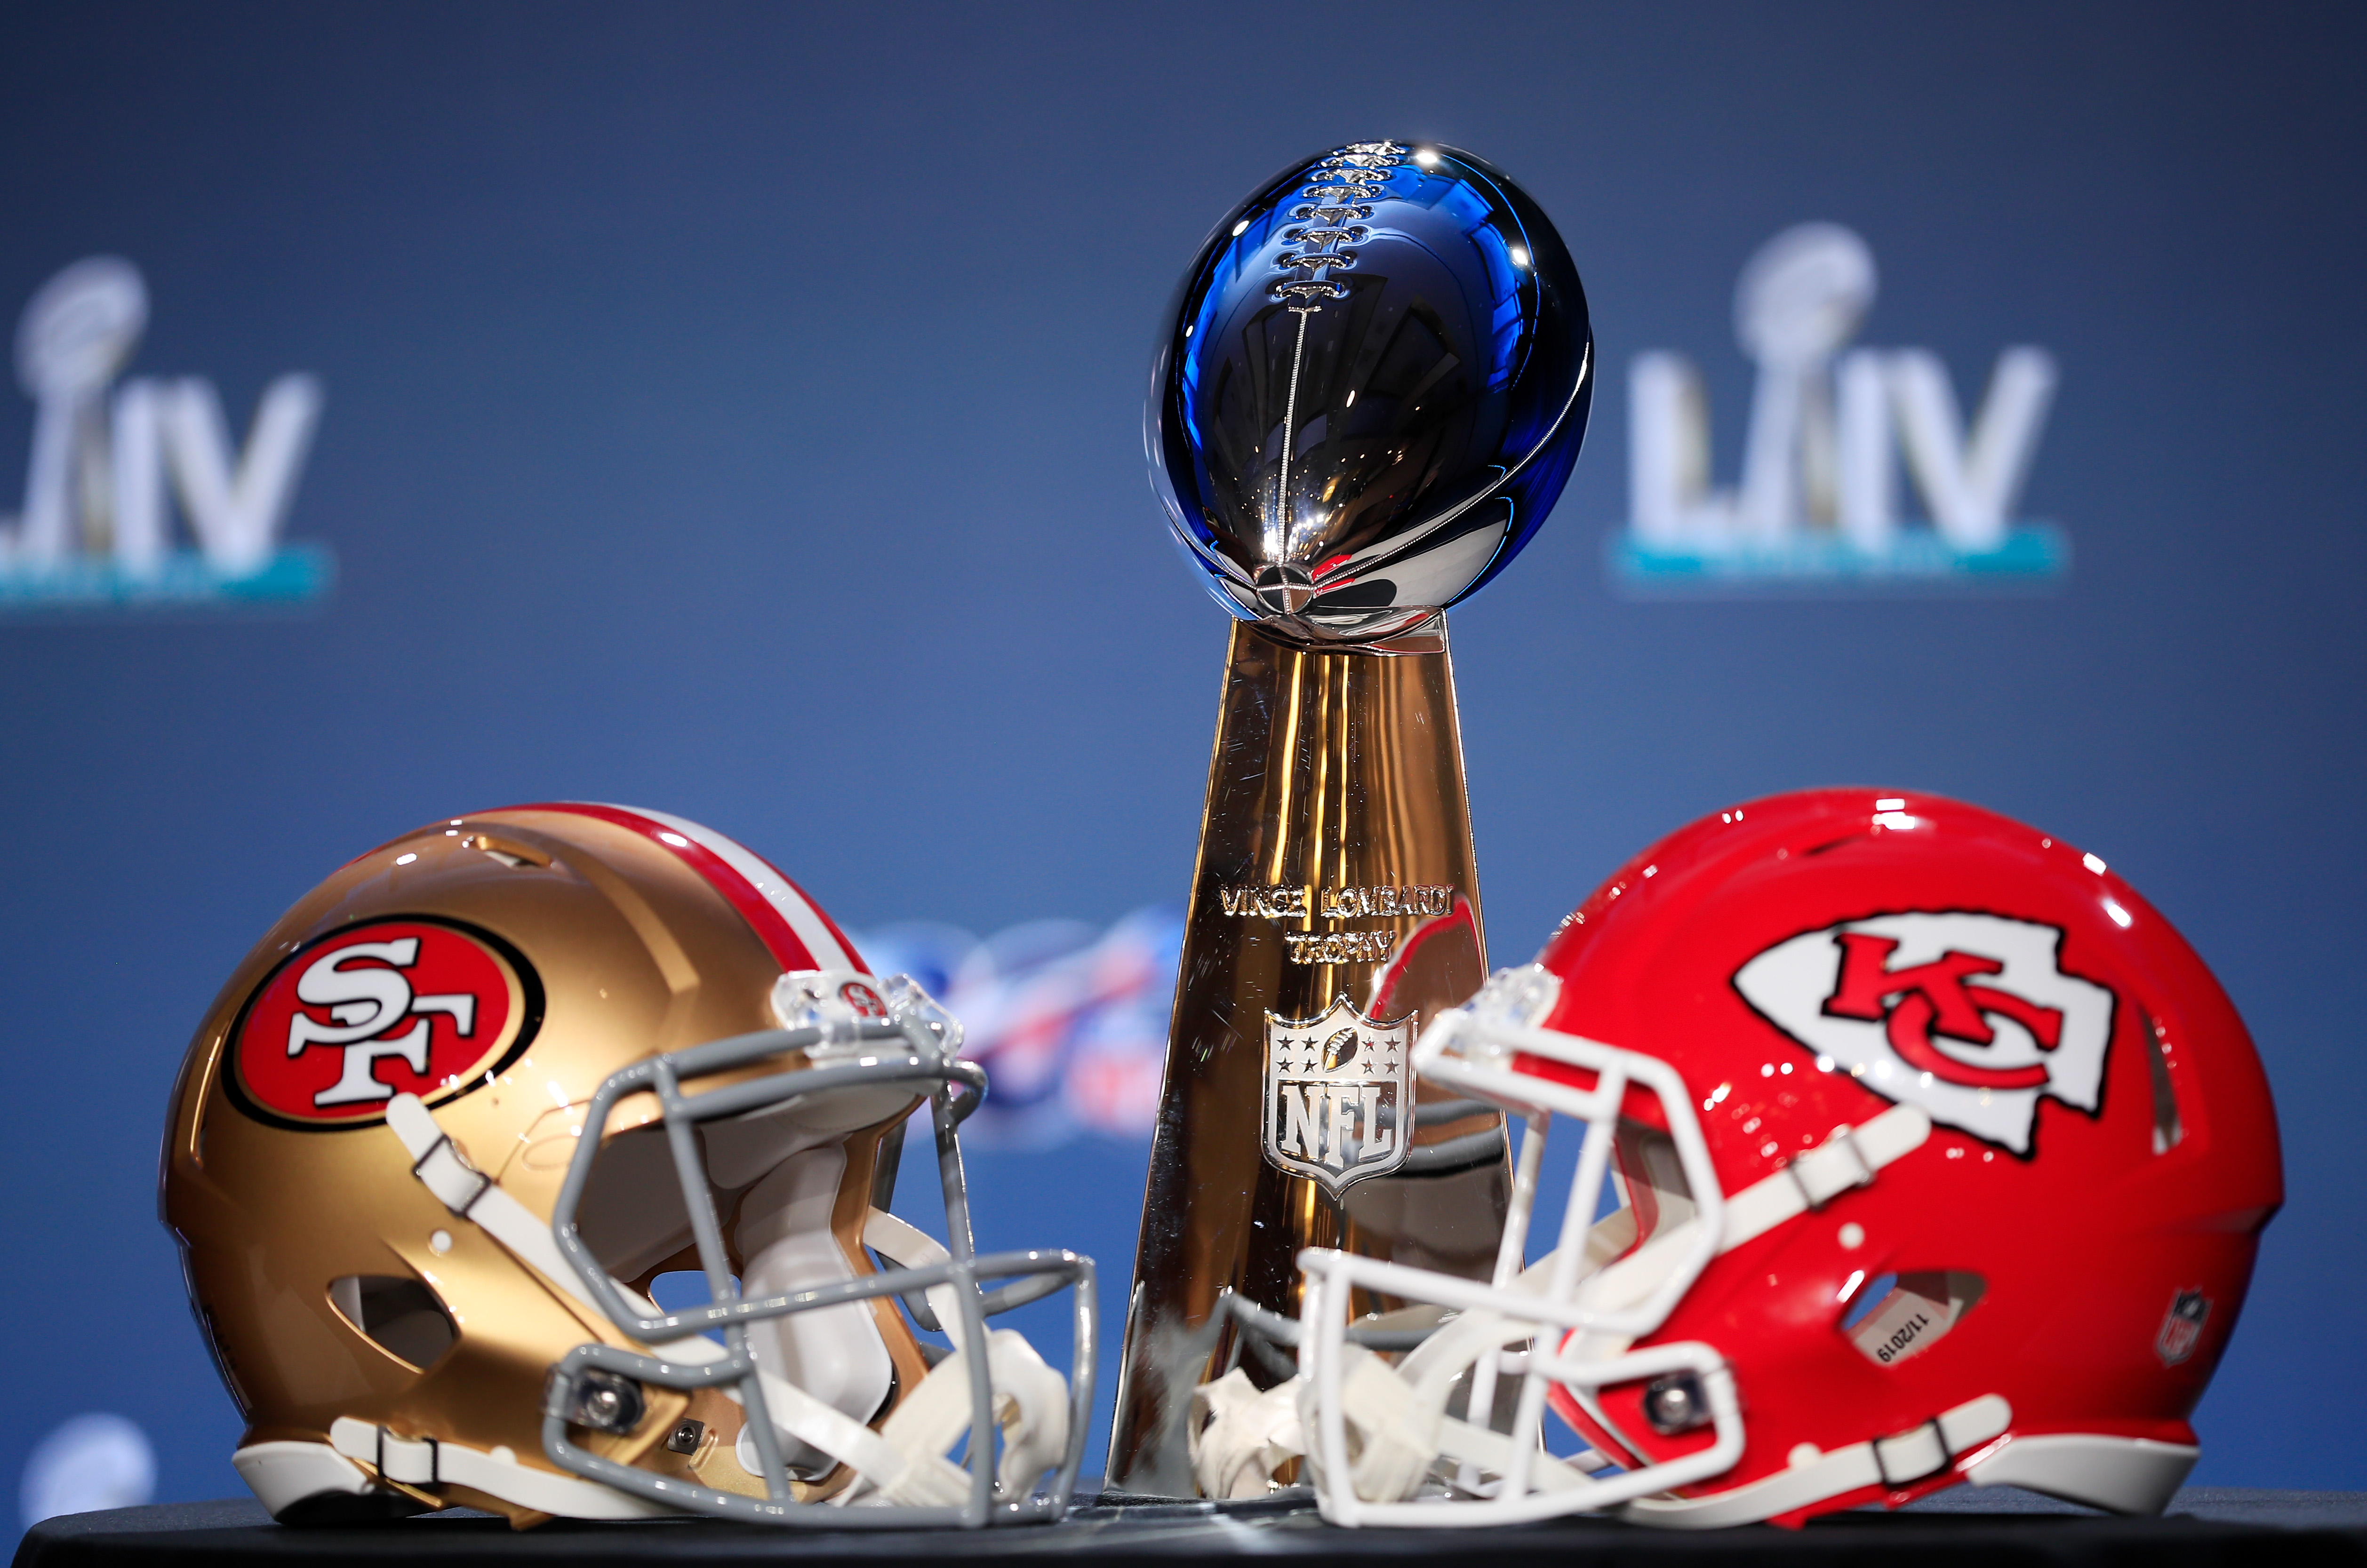 MIAMI, FLORIDA - JANUARY 29: The Vince Lombardi Trophy is displayed with helmets of the San Francisco 49ers and Kansas City Chiefs prior to a press conference with NFL Commissioner Roger Goodell for Super Bowl LIV at the Hilton Miami Downtown on January 29, 2020 in Miami, Florida. The 49ers will face the Chiefs in the 54th playing of the Super Bowl, Sunday February 2nd. (Photo by Cliff Hawkins/Getty Images)